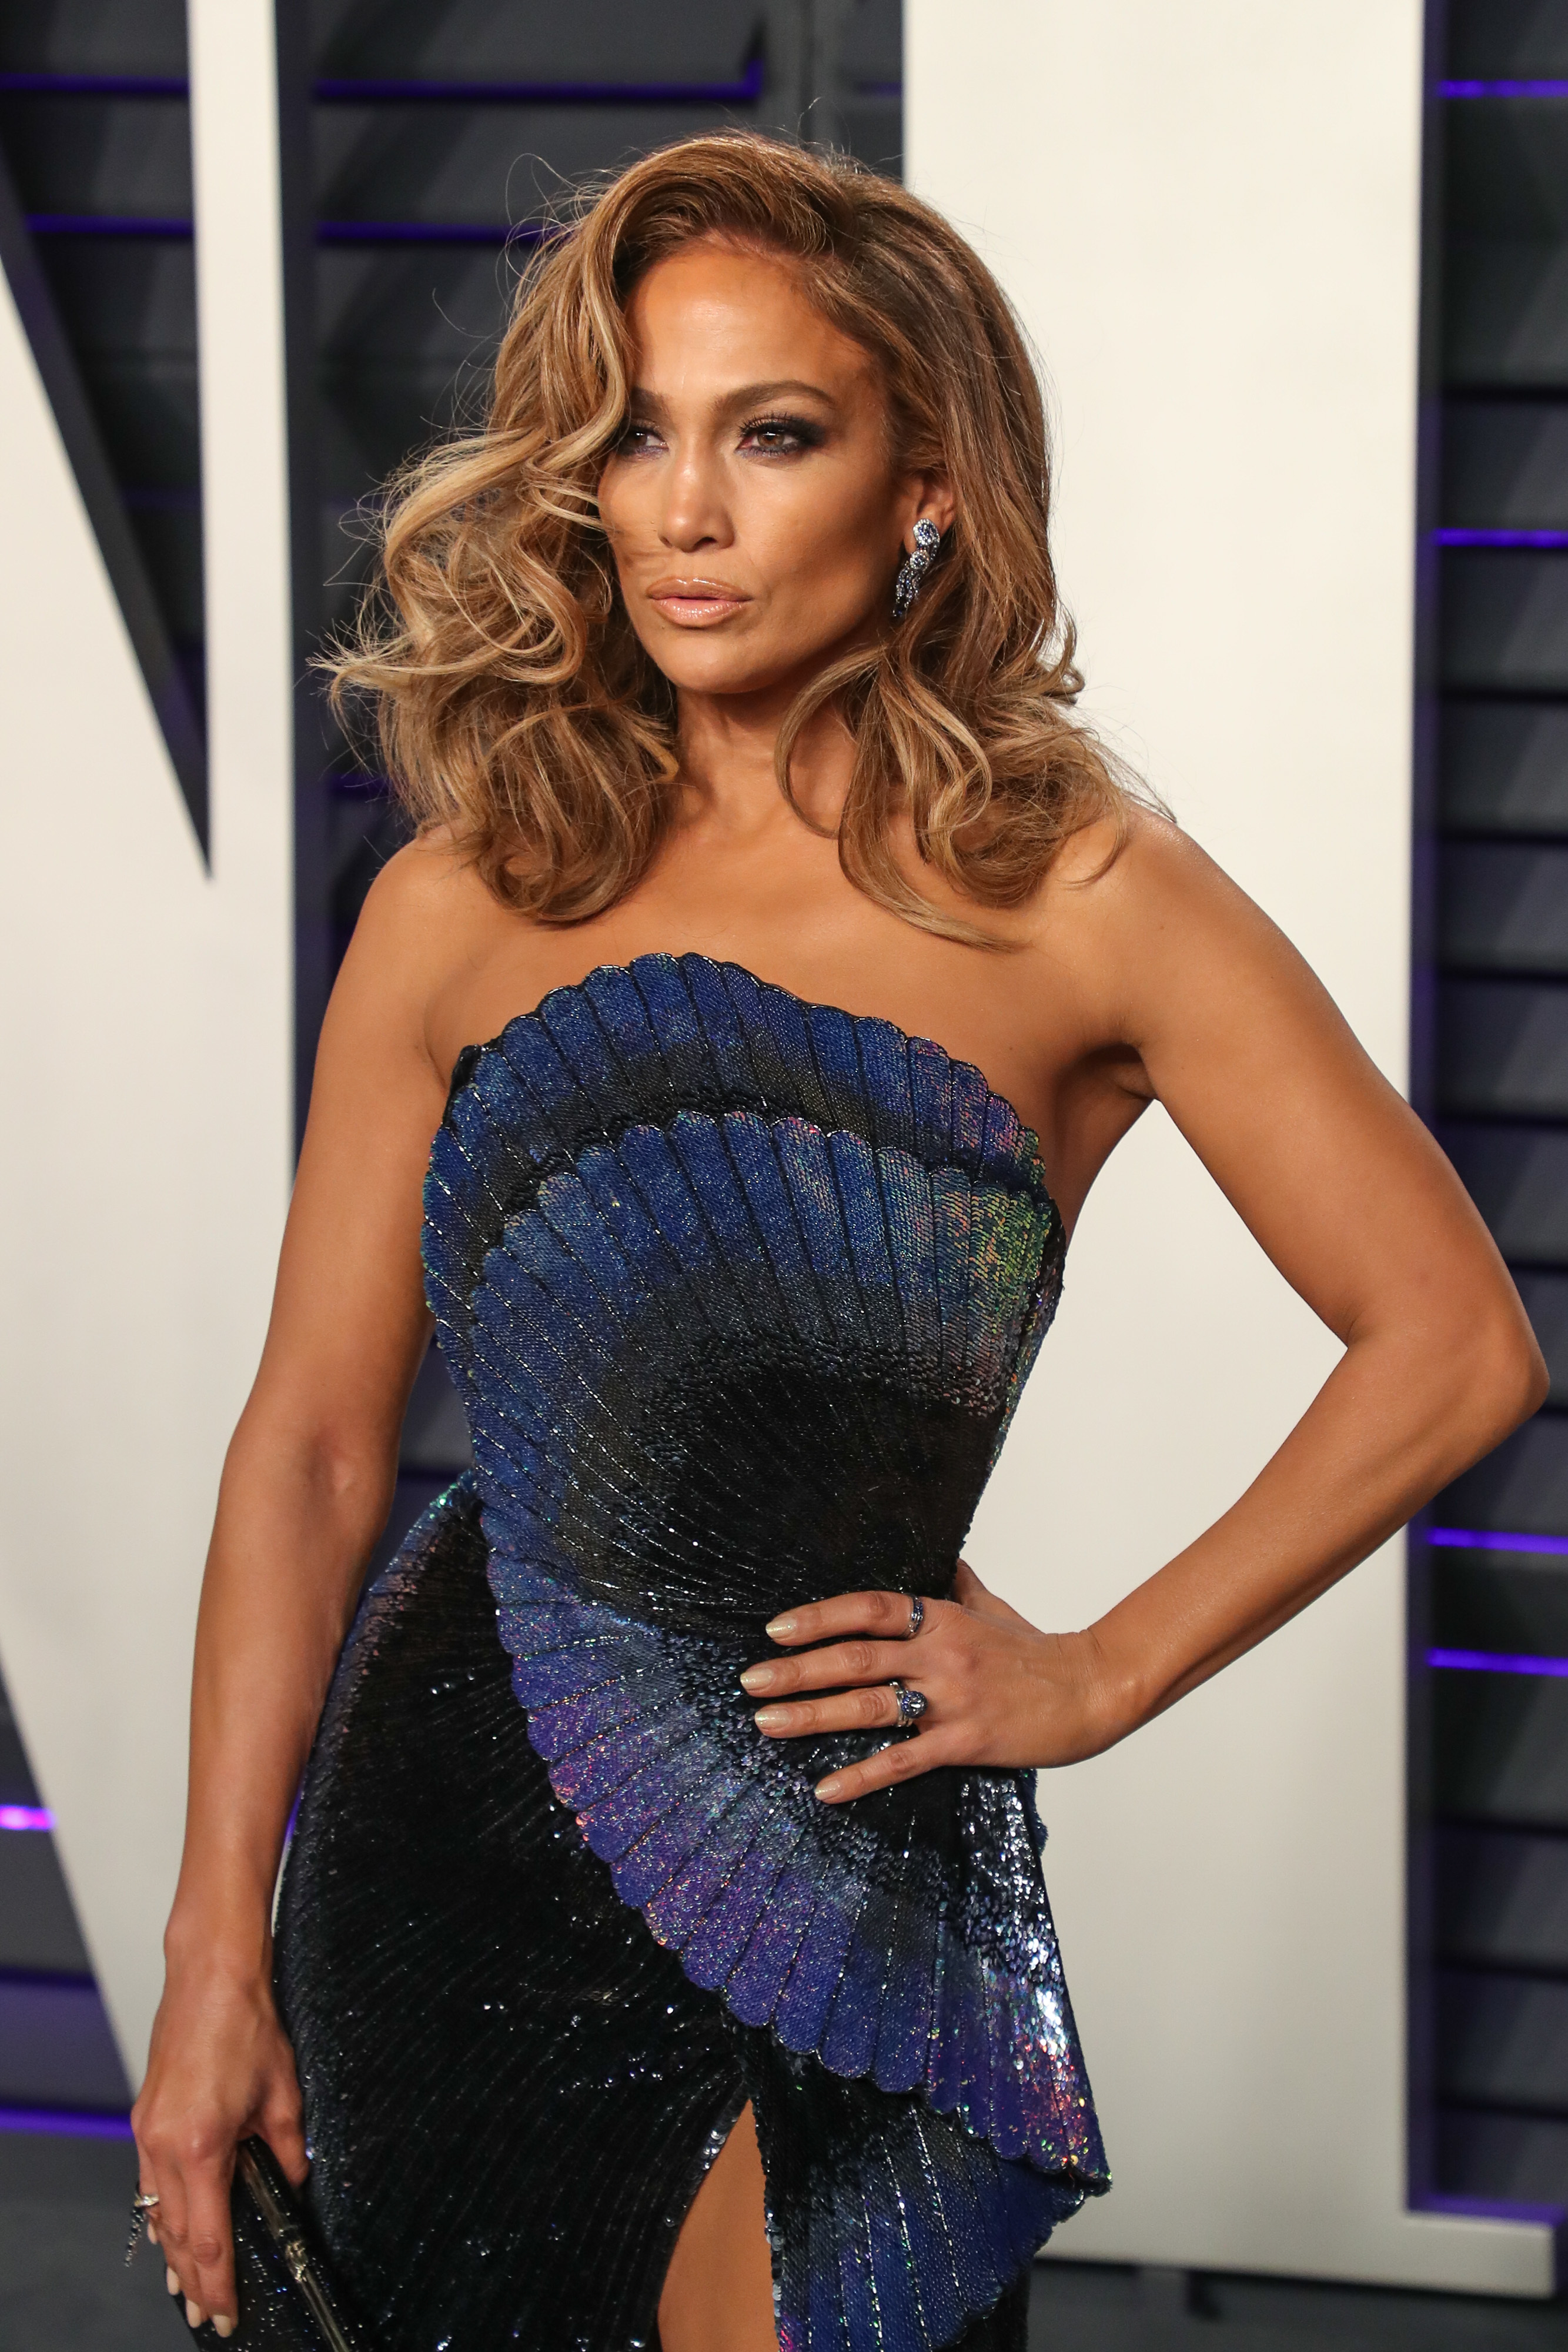 List of awards and nominations received by Jennifer Lopez